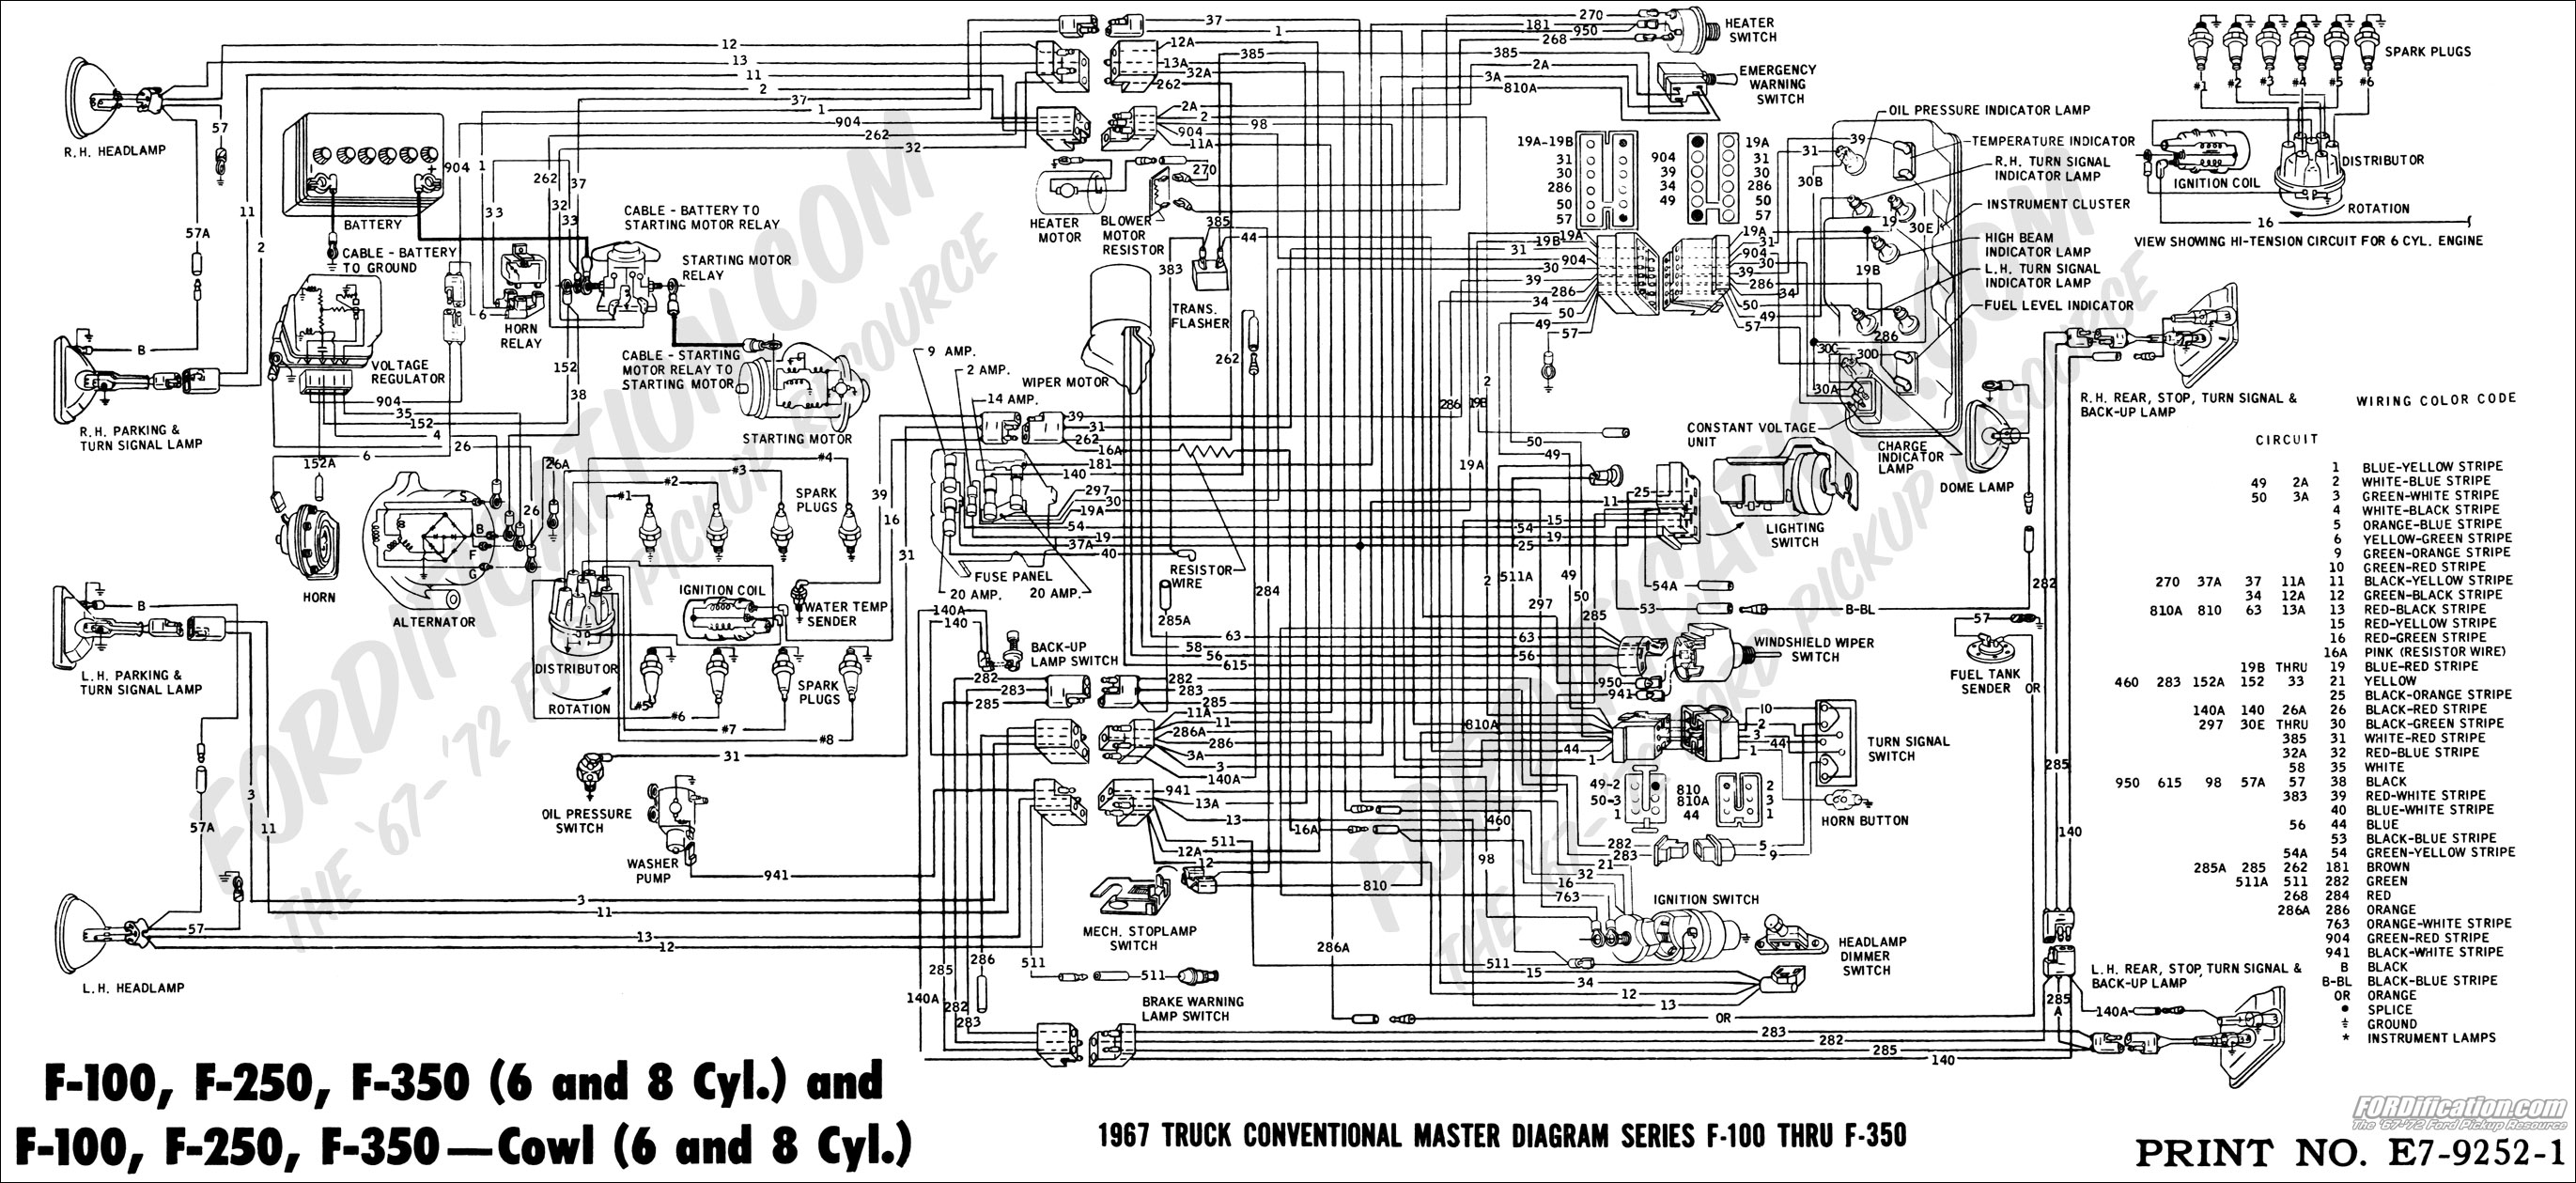 67masterdiagram ford truck technical drawings and schematics section h wiring 1993 ford radio wiring diagram at reclaimingppi.co